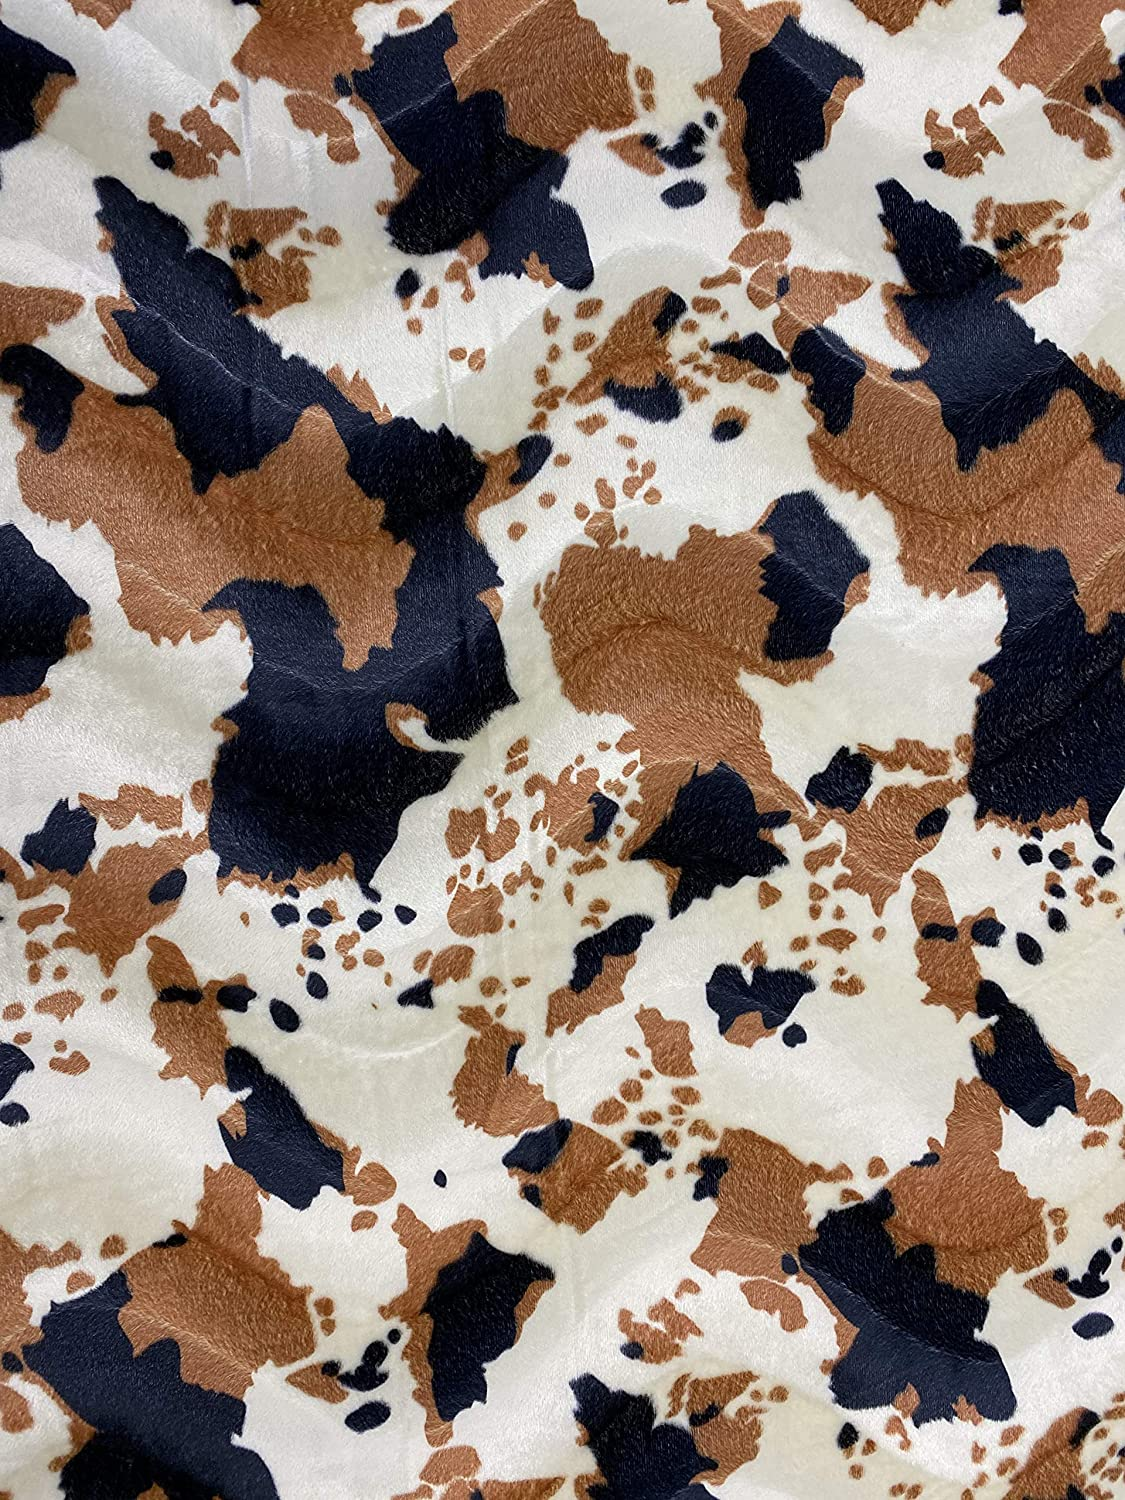 low-pricing FabricLA Velboa S-Wave Short Pile Cow Fabric - Inch Wi 60